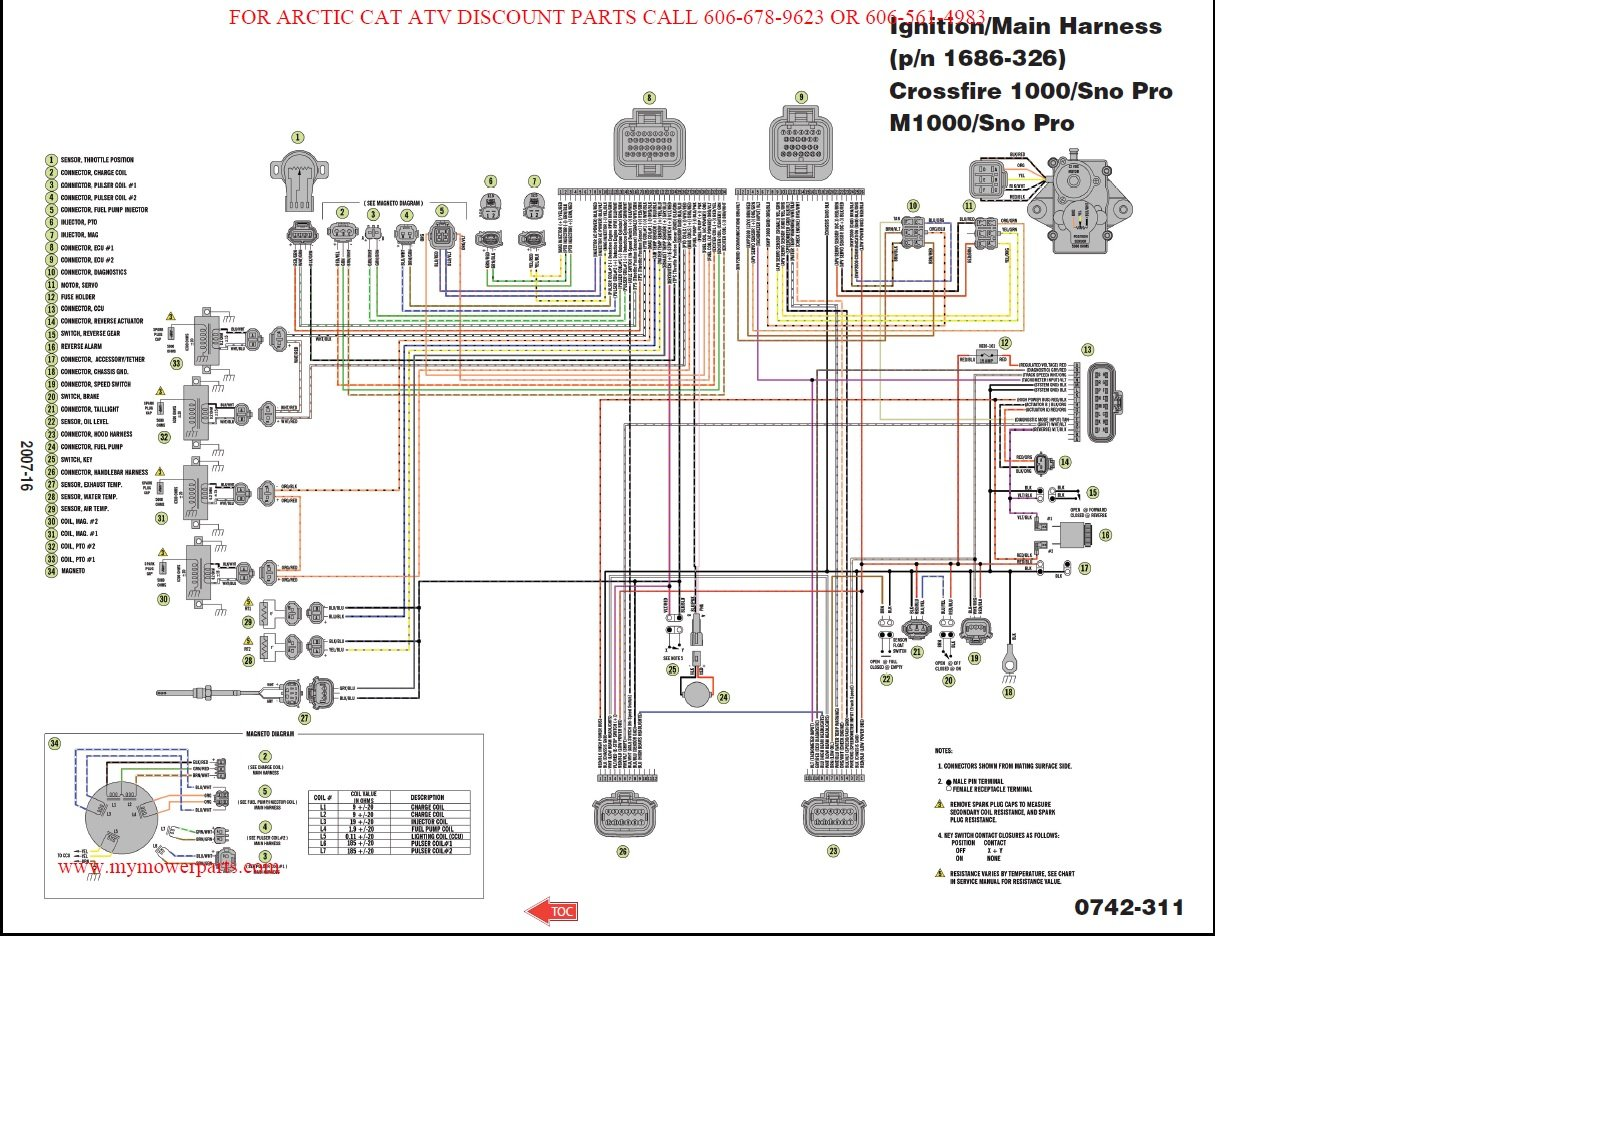 4 wire ignition switch diagram atv diesel engine starter 2007 sno pro wiring - arcticchat.com arctic cat forum